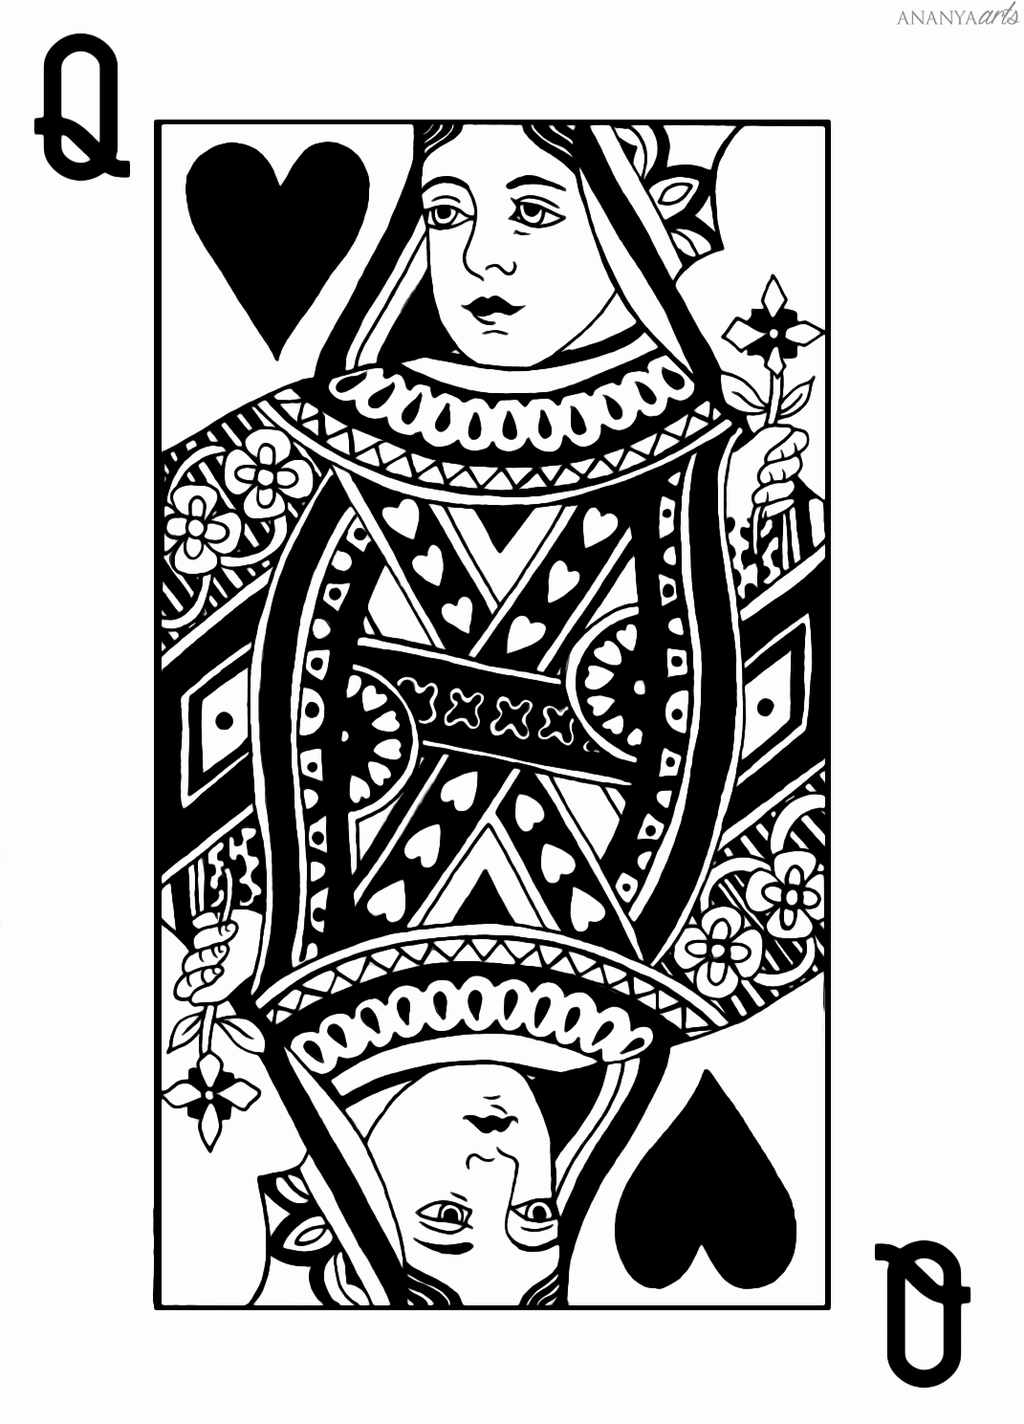 Queen Of Hearts Bw By Ananyaarts On Deviantart Queen Of Hearts Tattoo Queen Of Hearts Card Queen Of Hearts